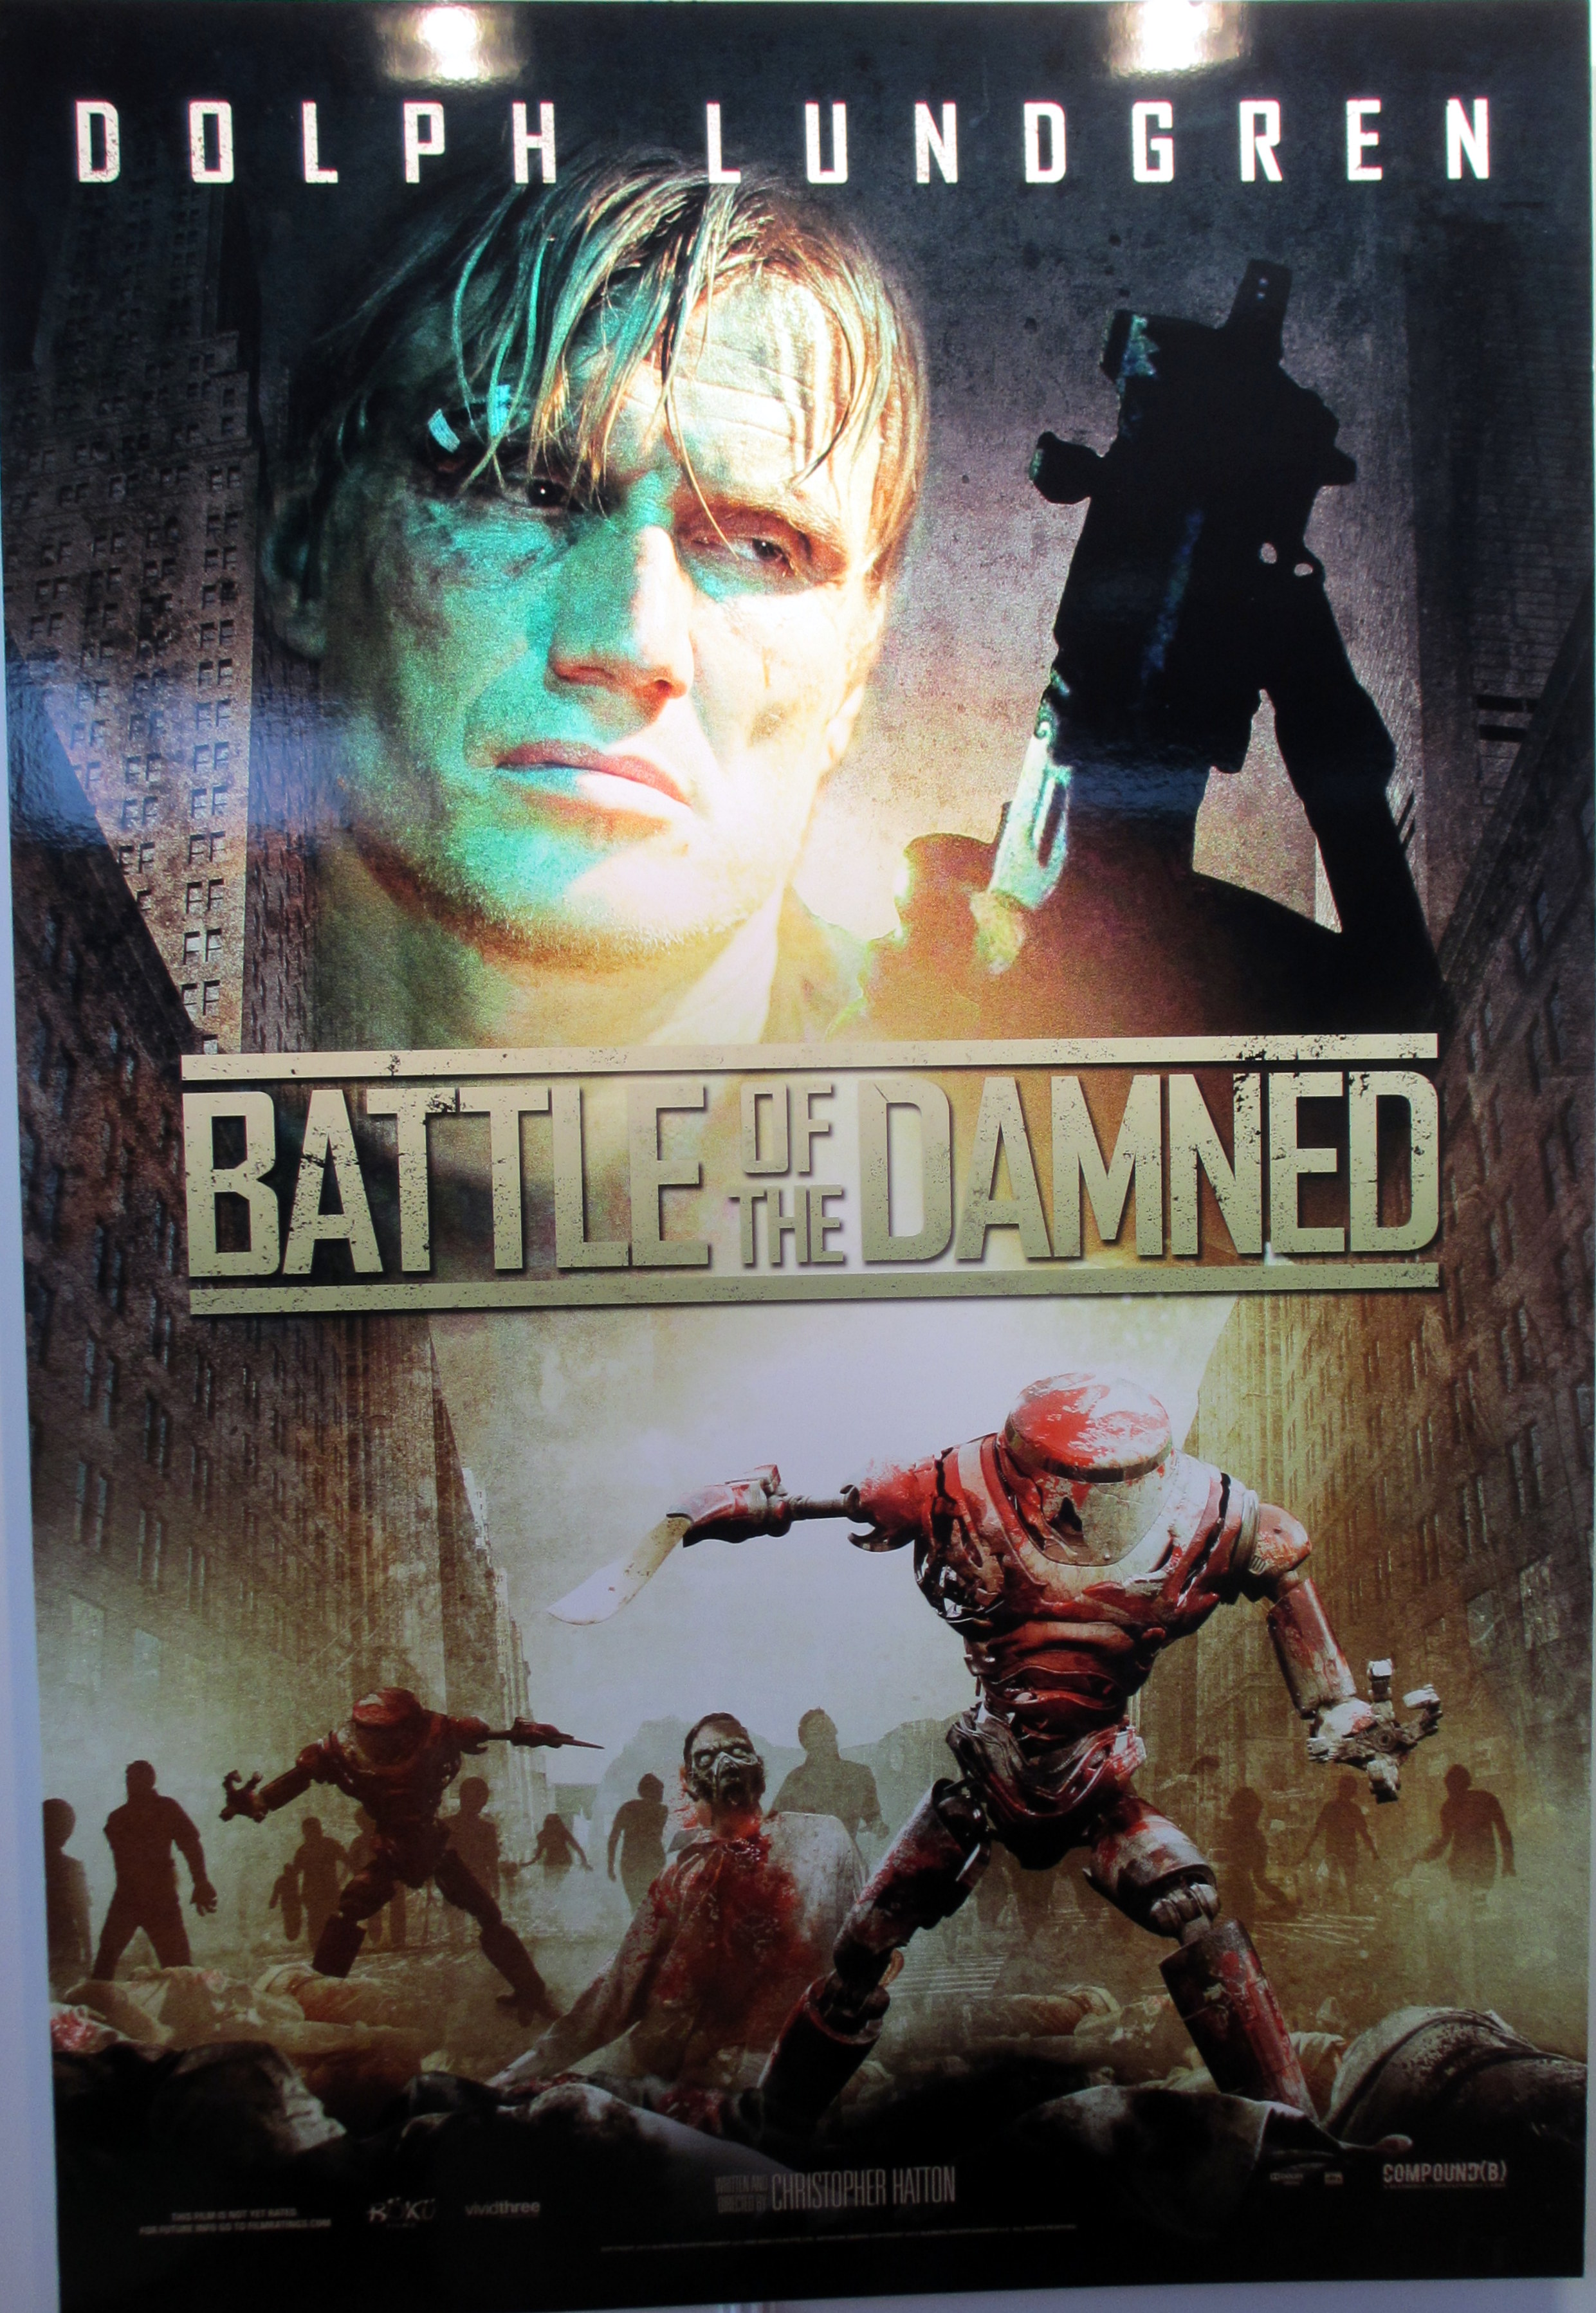 The Battle of the Damned Movie Download Full Movie - Mon premier blog